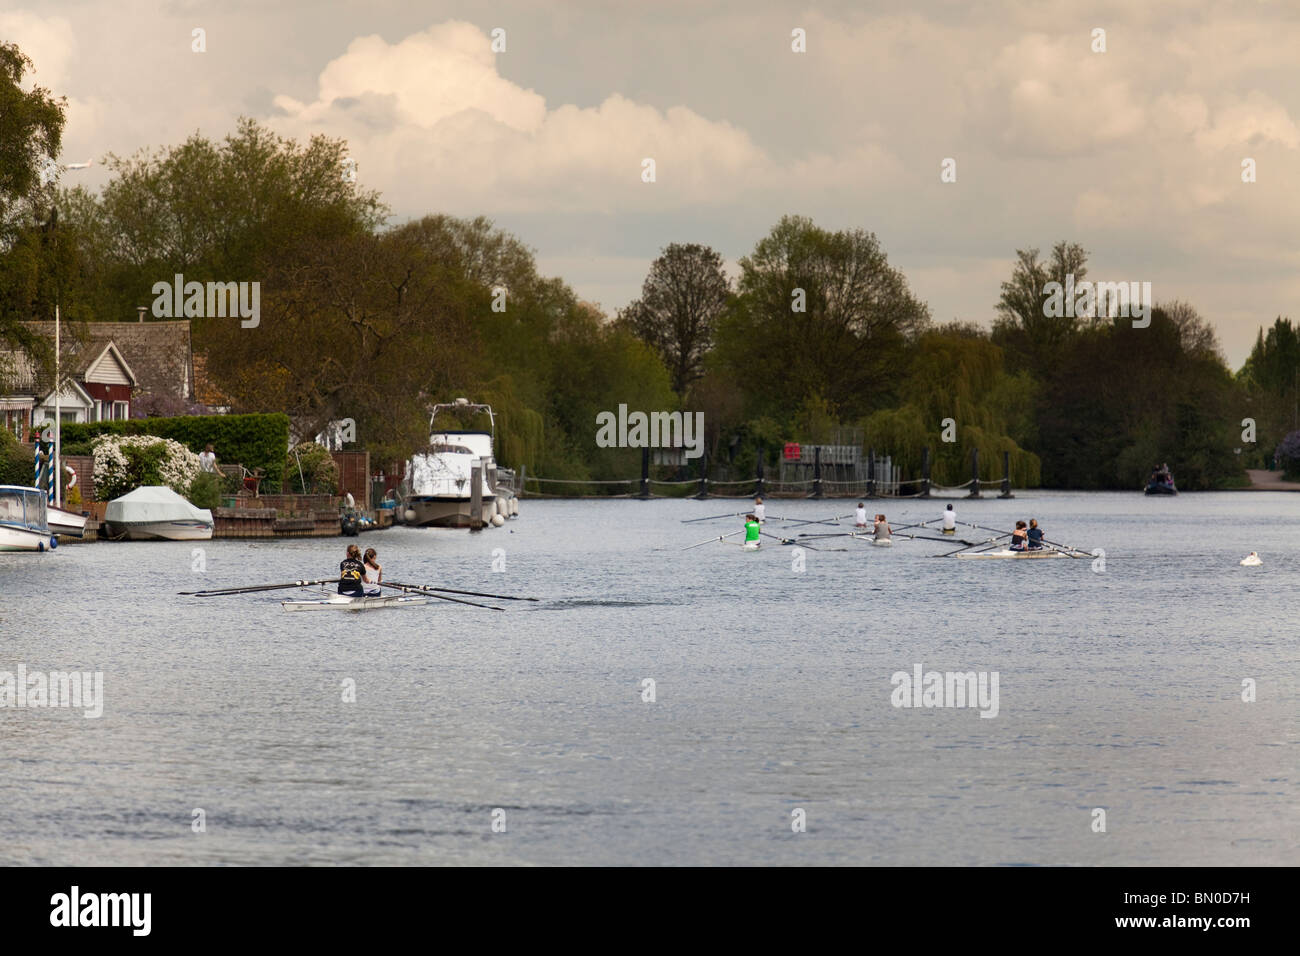 club outing of one and two person skulls rowing together on the River Thames - Stock Image